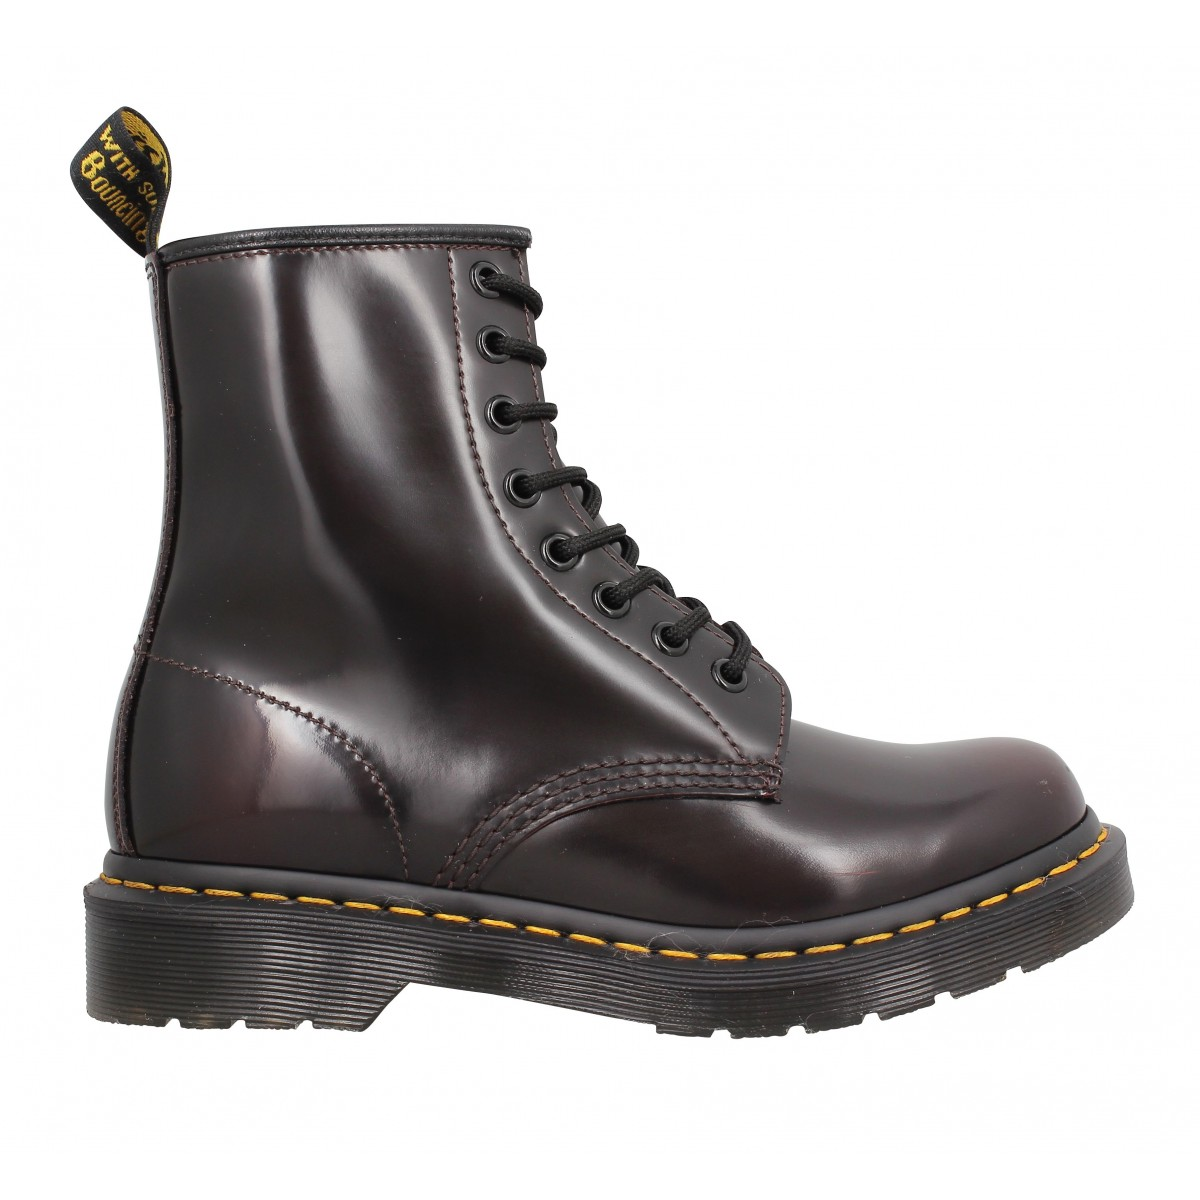 dr martens 1460 arcadia femme cherry red femme fanny chaussures. Black Bedroom Furniture Sets. Home Design Ideas